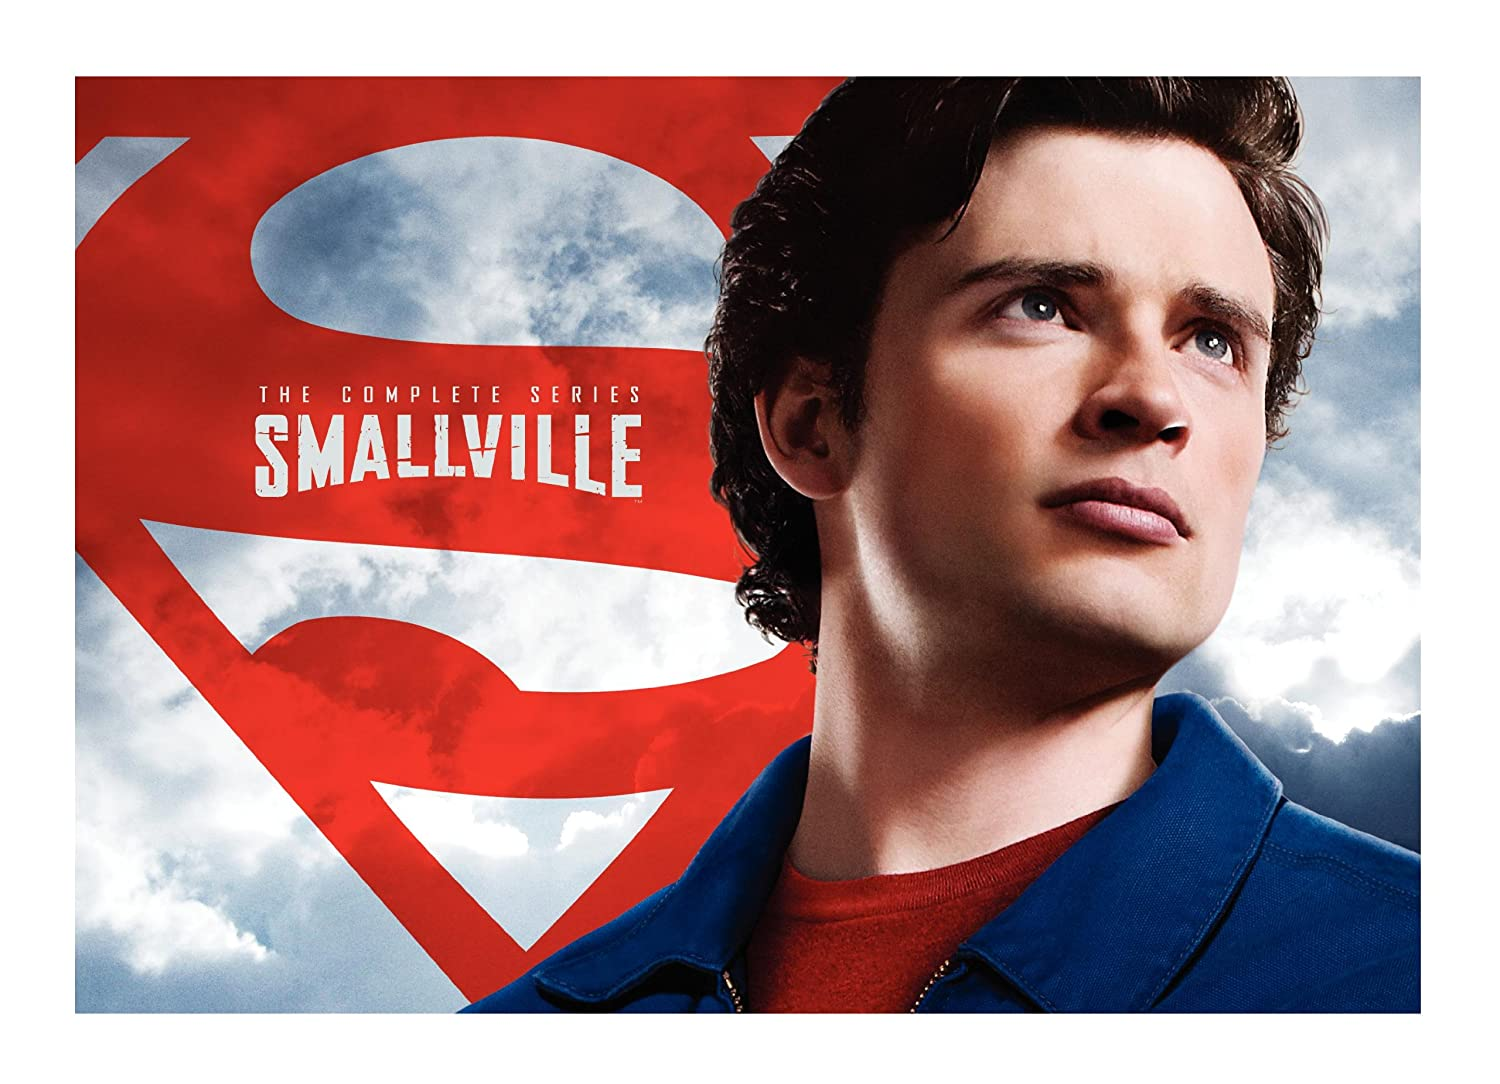 Smallville: The Complete Series 66% off